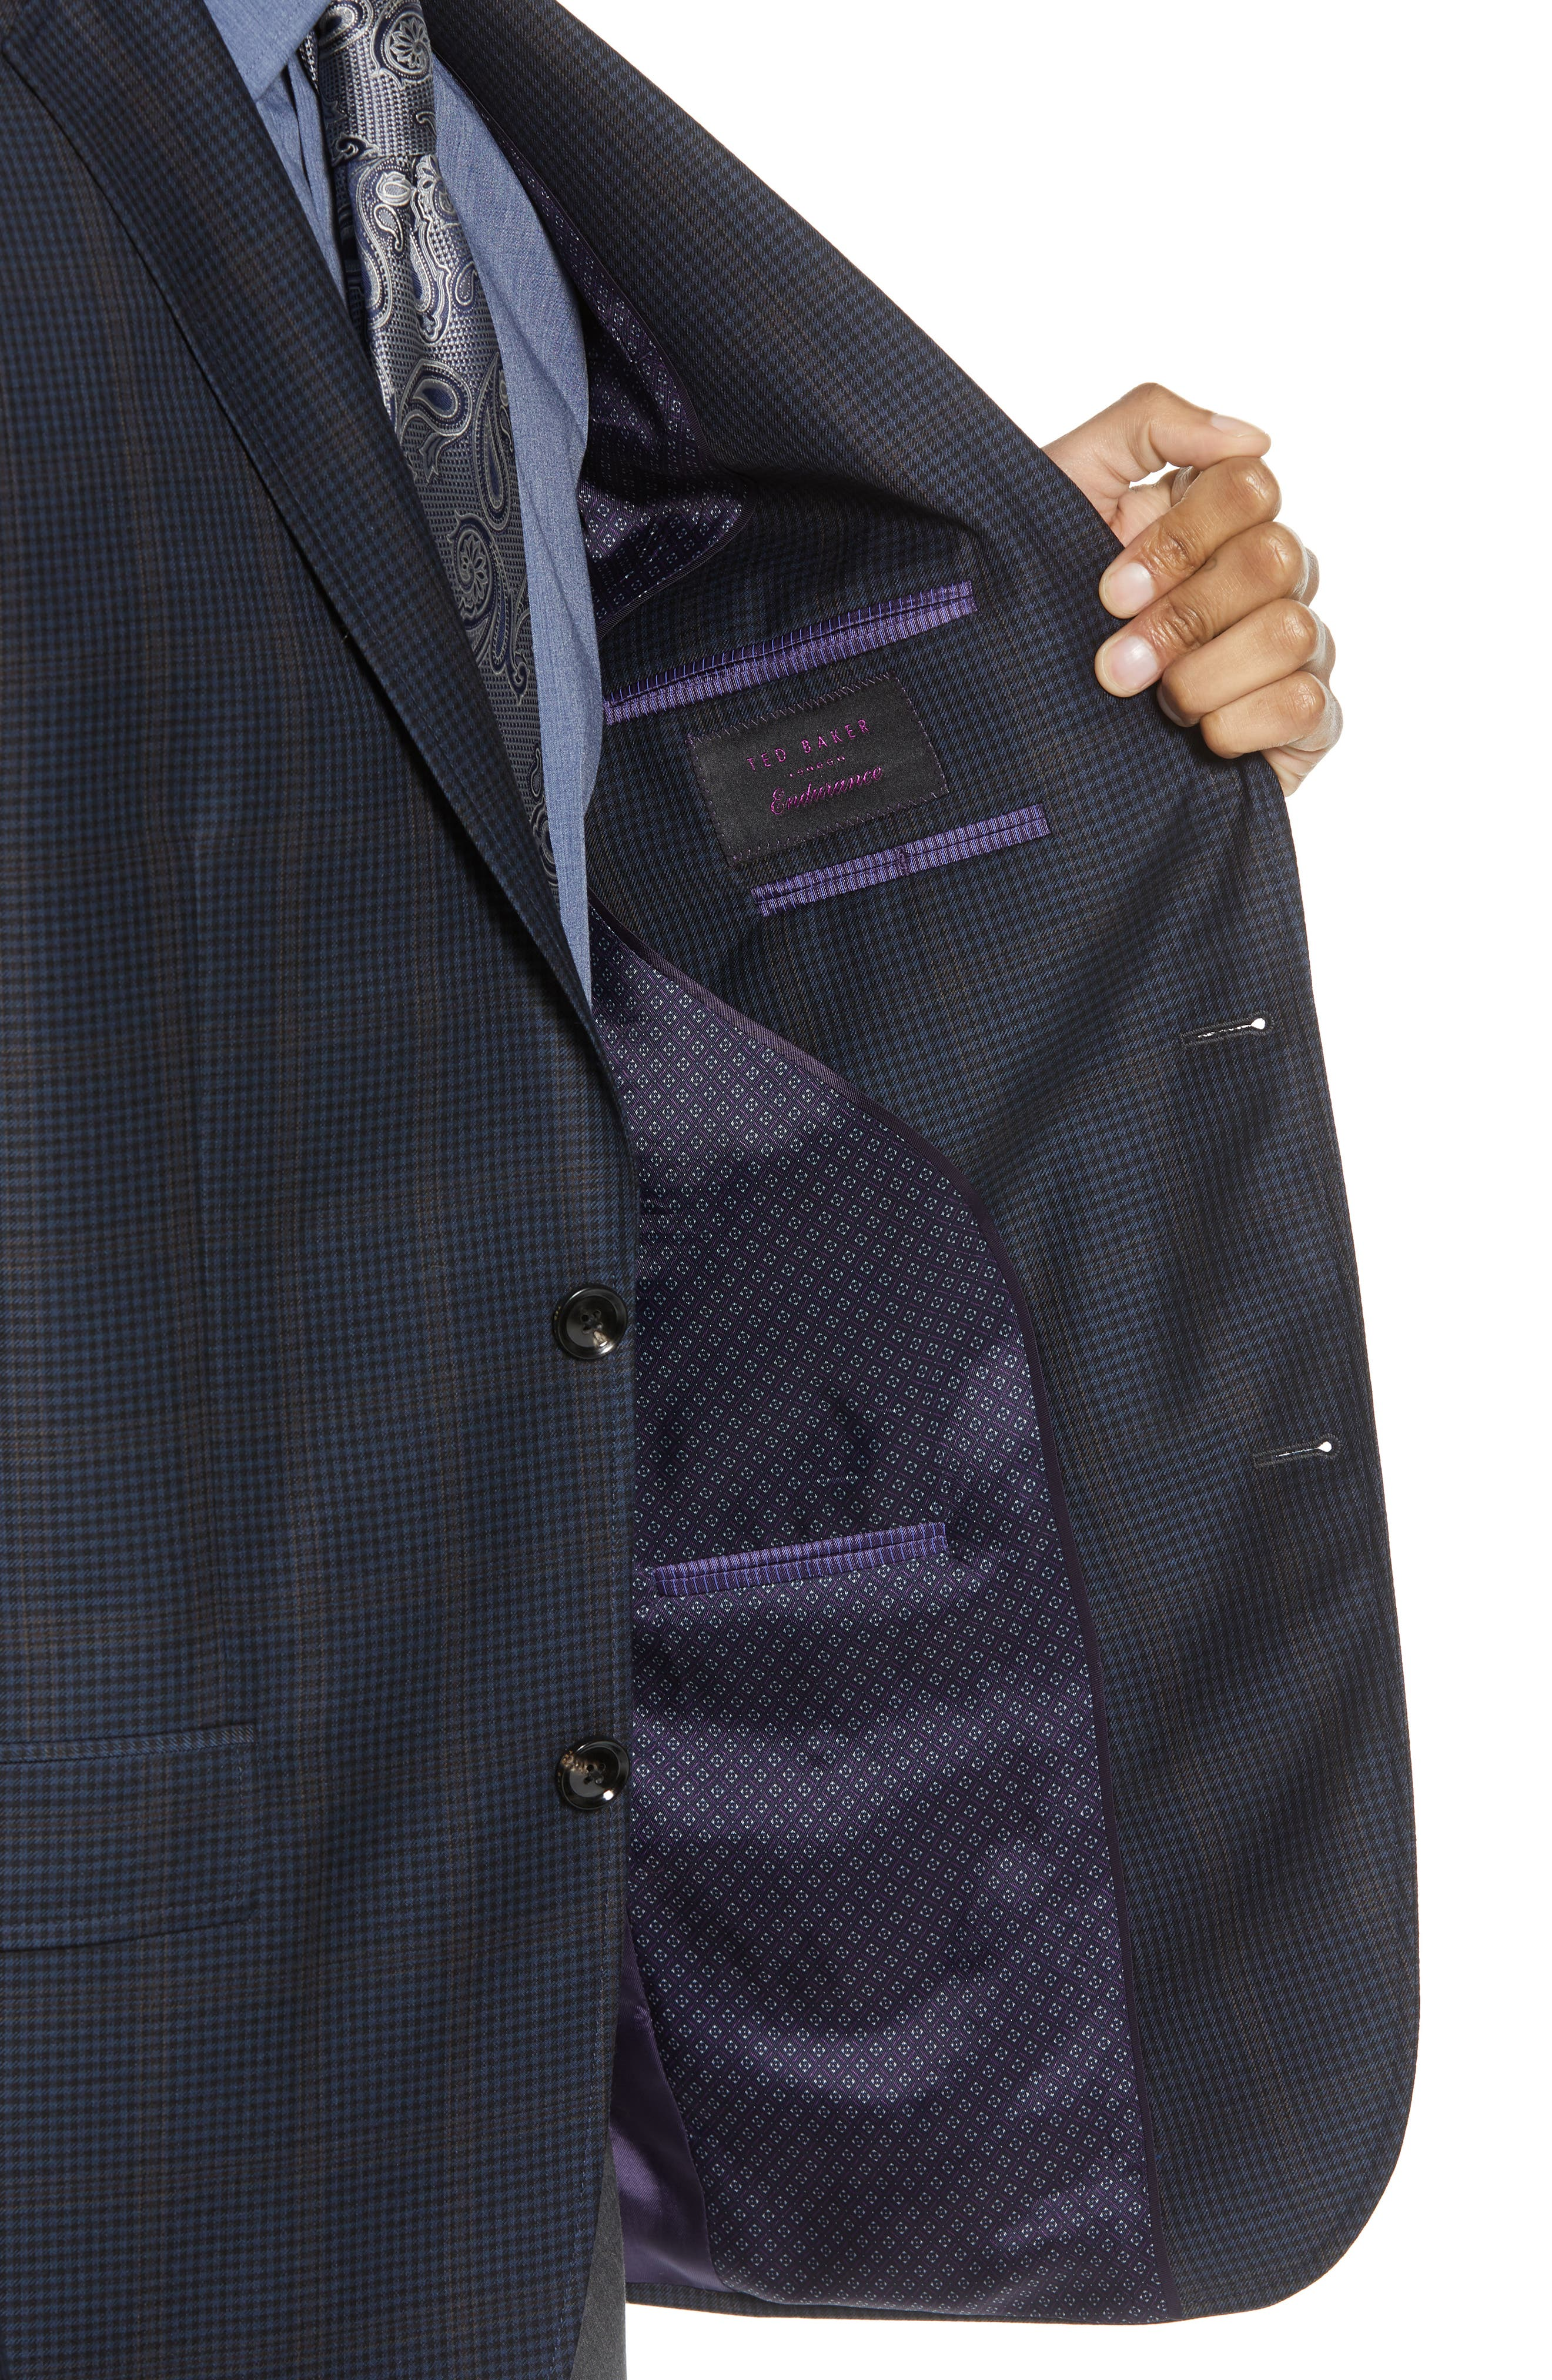 Jay Trim Fit Houndstooth Wool Sport Coat,                             Alternate thumbnail 4, color,                             Blue